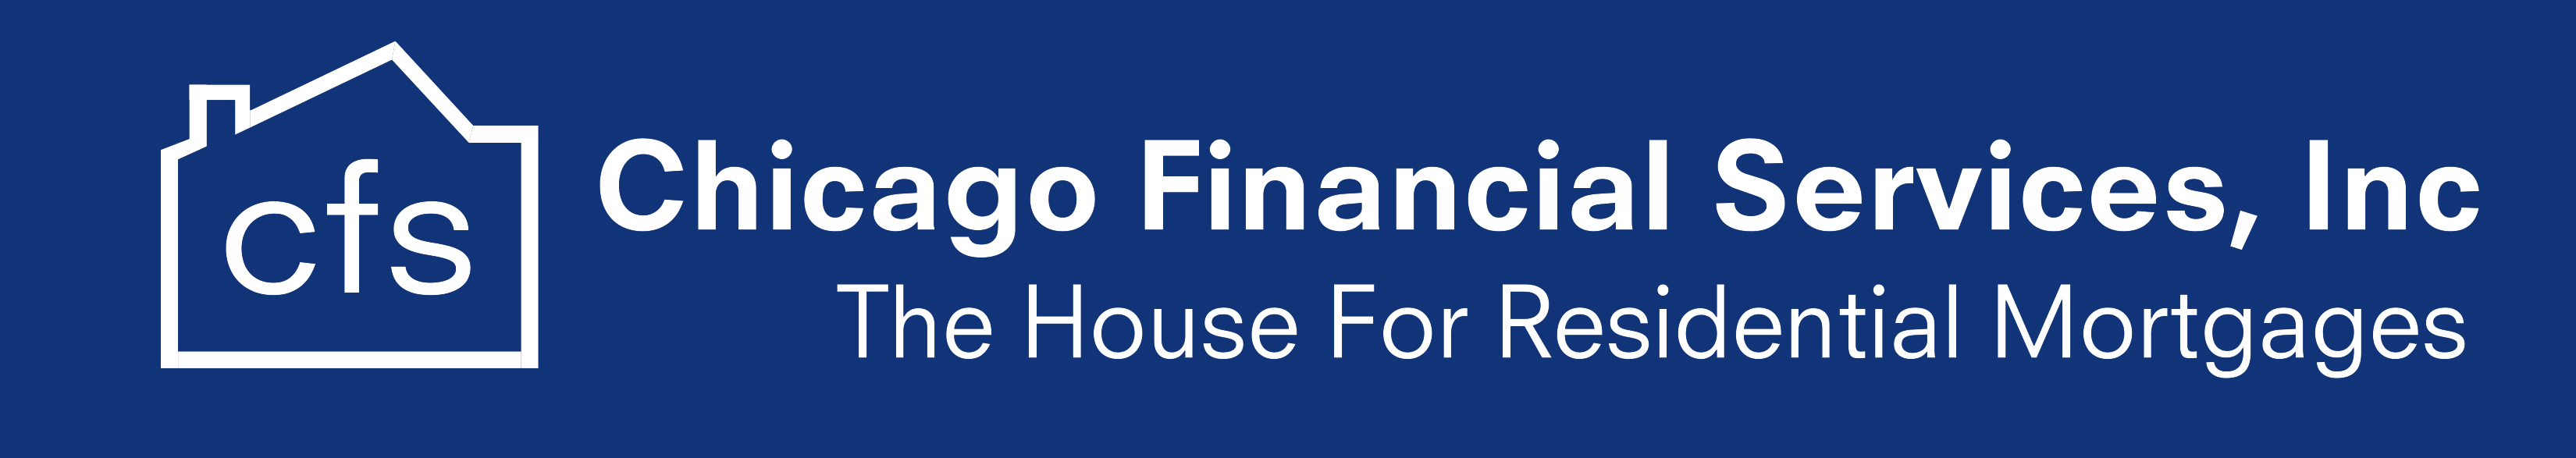 The House for Residential Mortgages